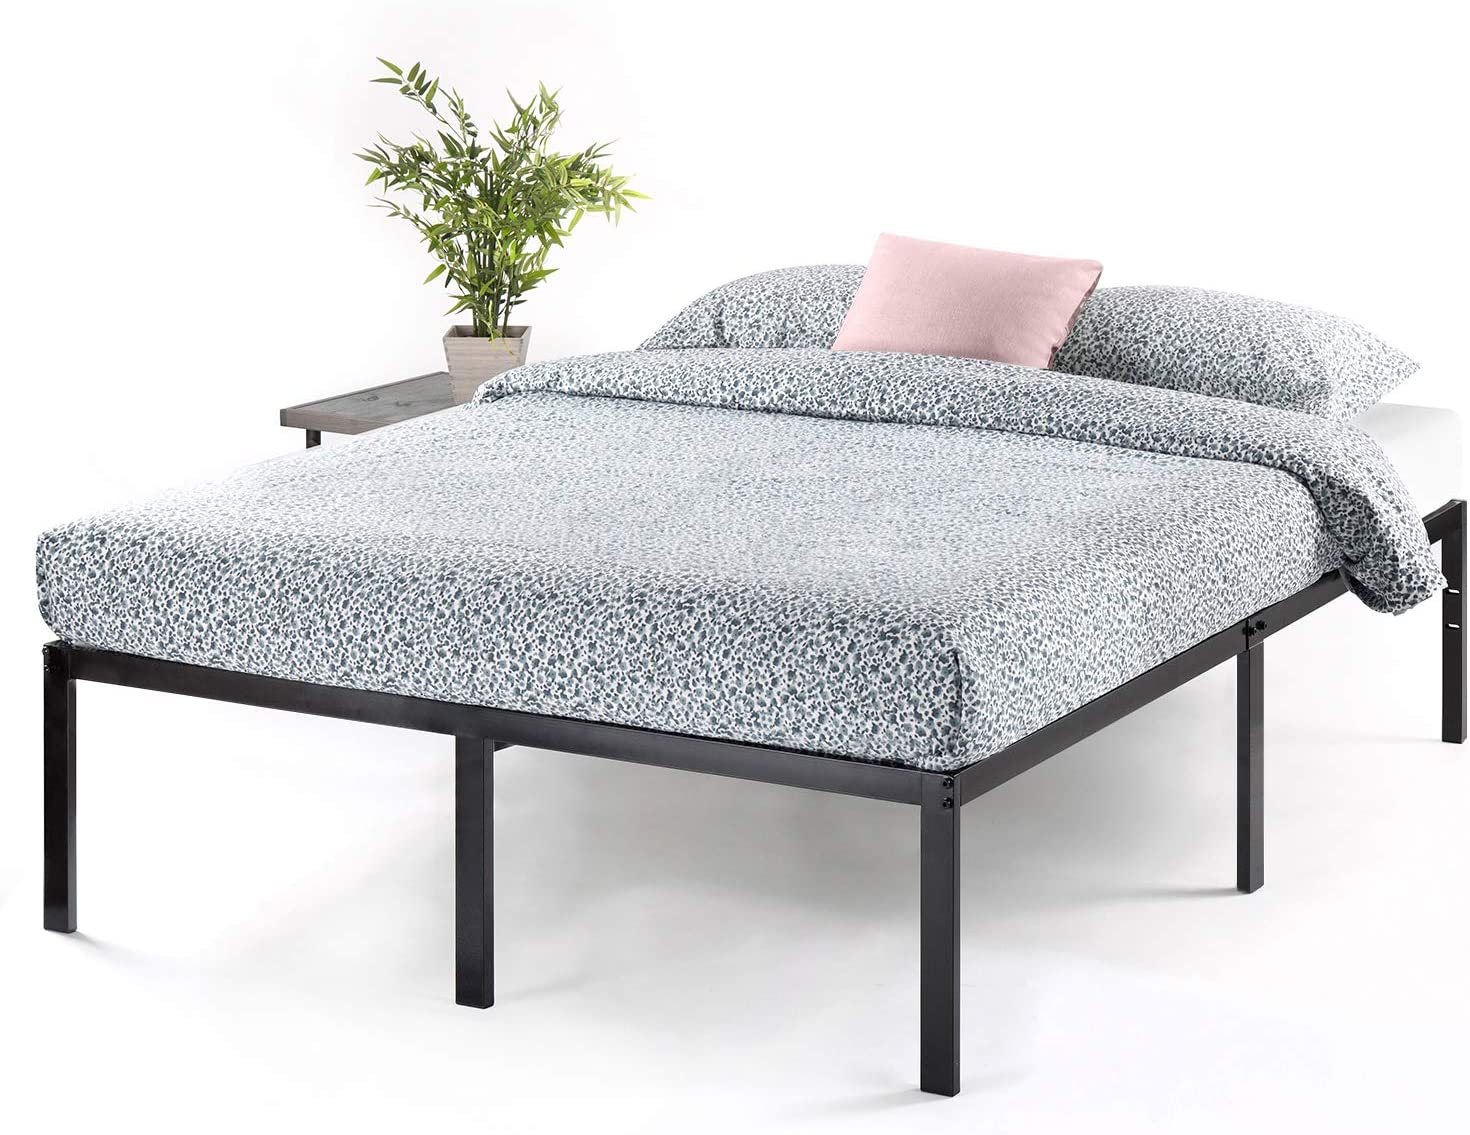 Best Price -Mattress 18 Inch Metal Platform Bed, Heavy Duty Steel Slats, No Box Spring Needed, Easy Assembly, Black, Queen